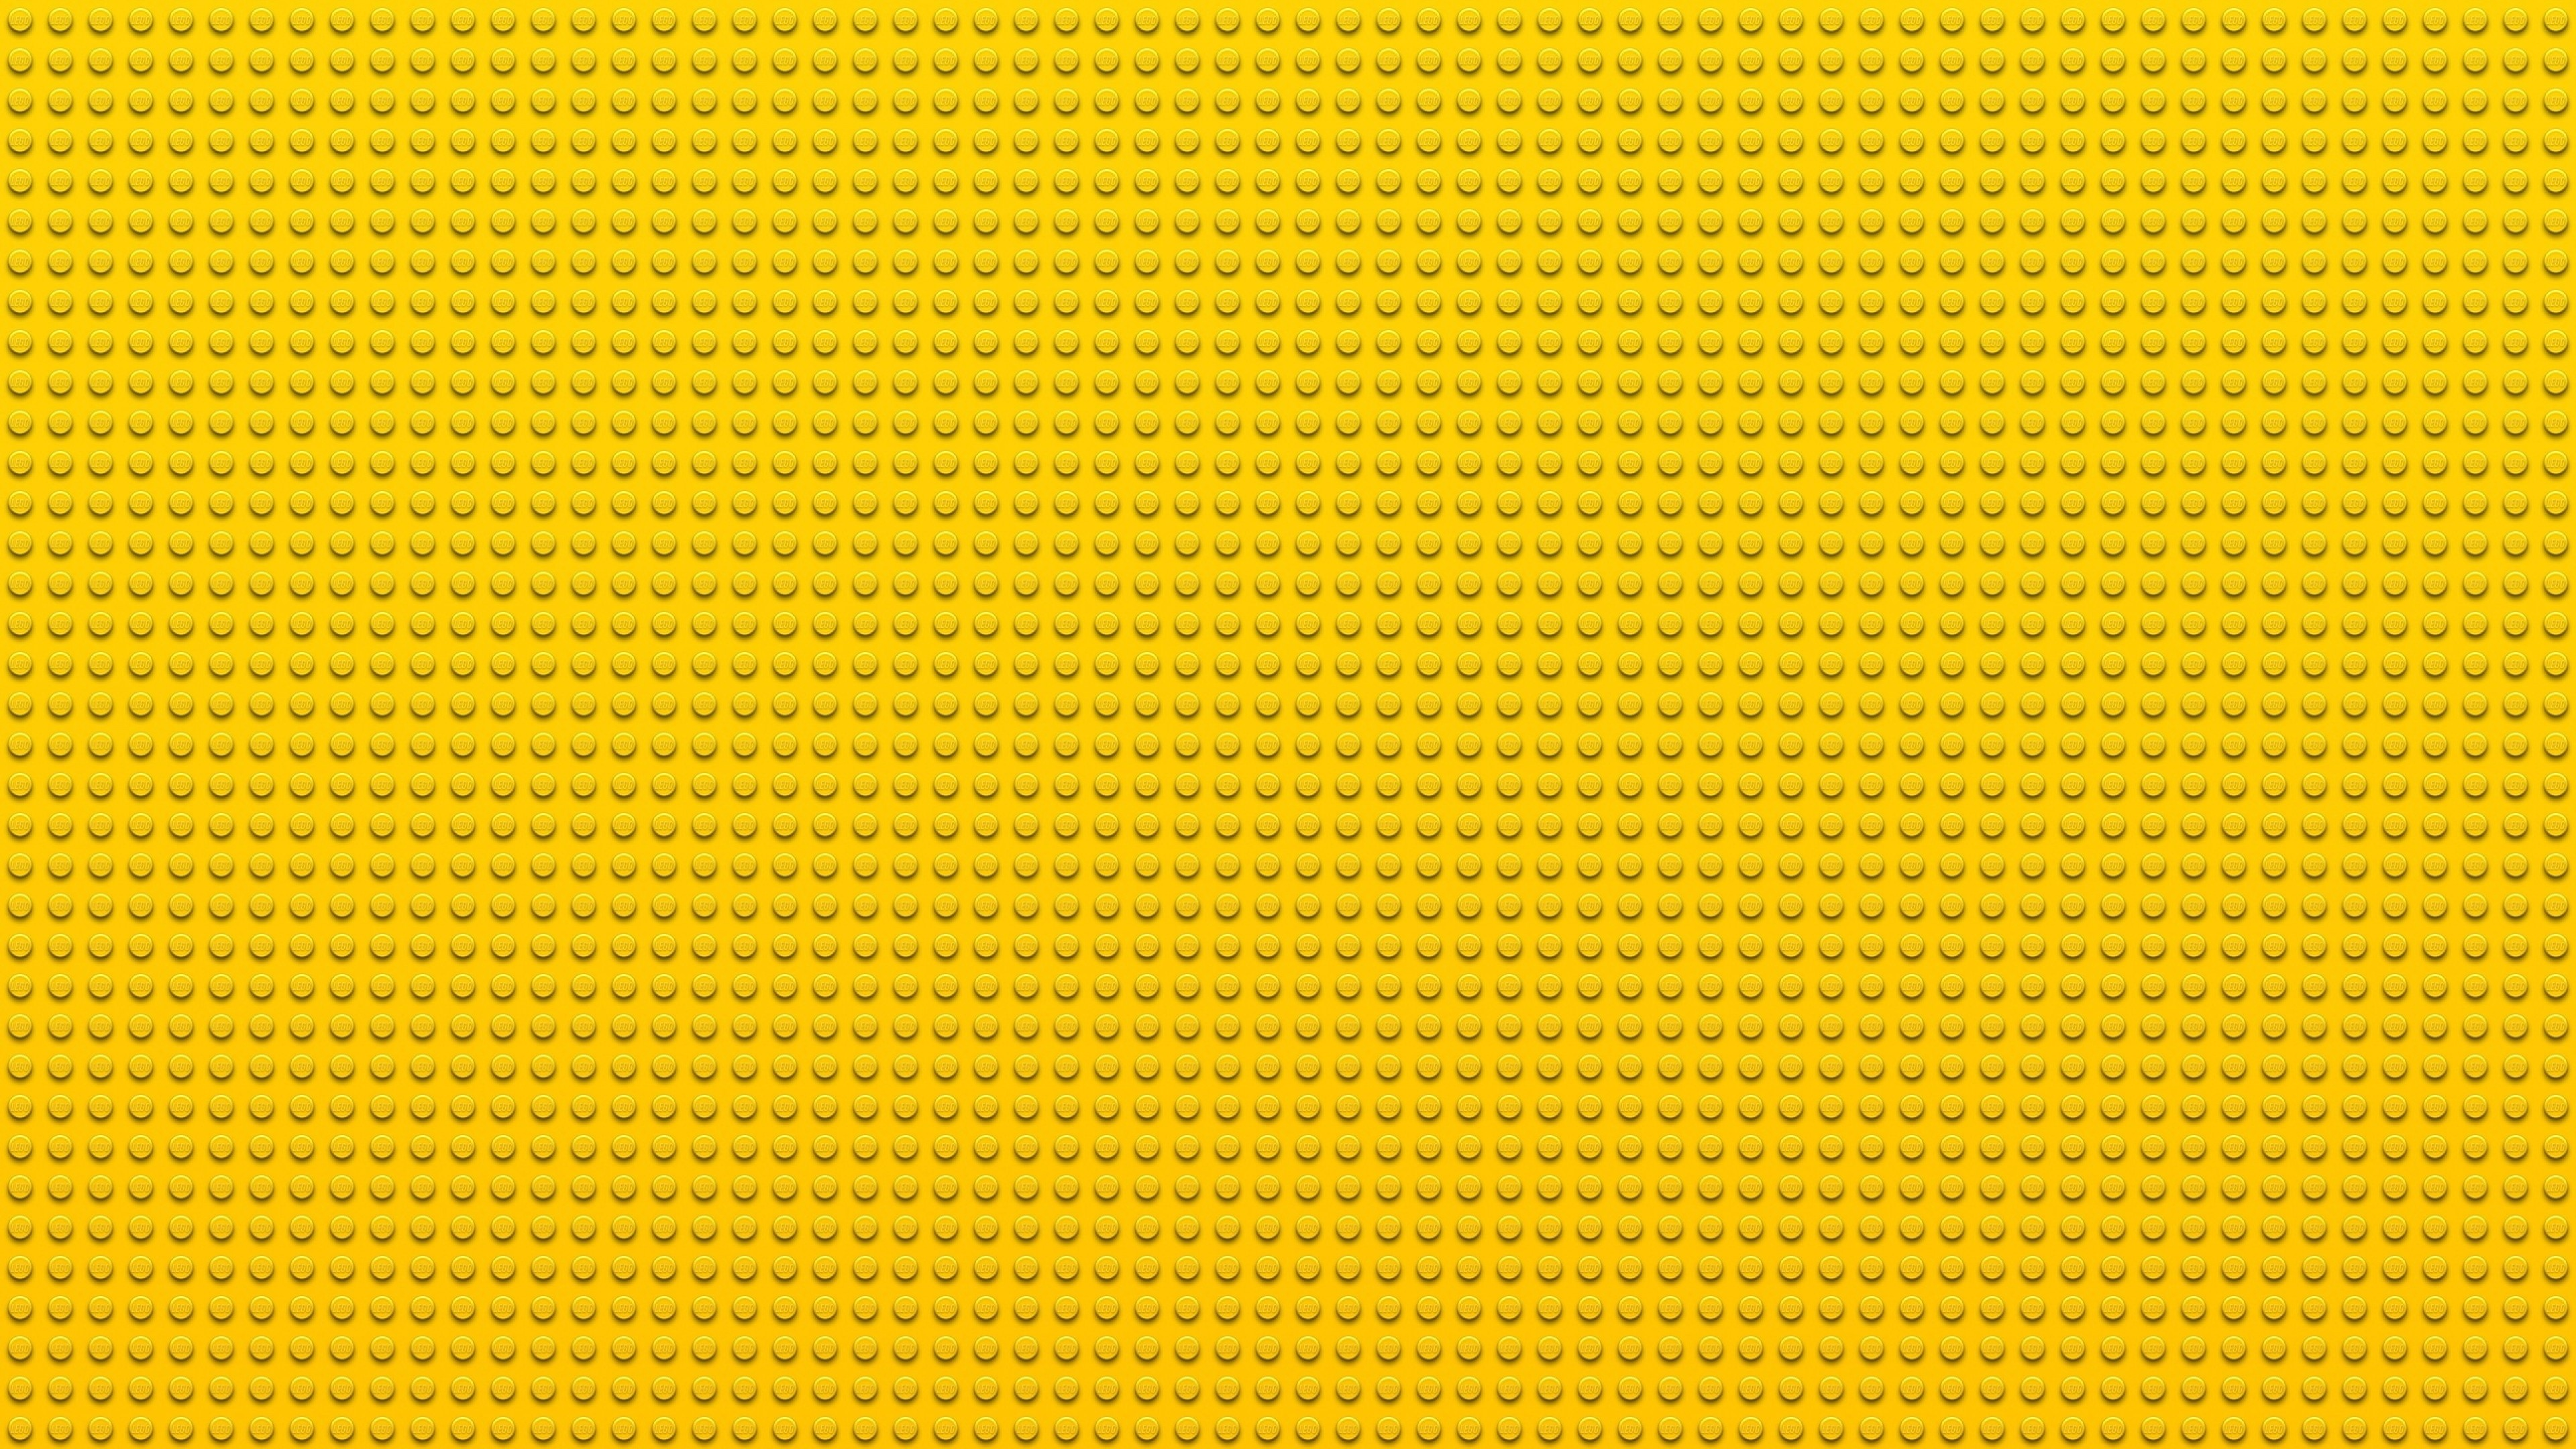 3840x2160 Wallpaper  Lego, Points, Circles, Yellow 4K Ultra HD HD .